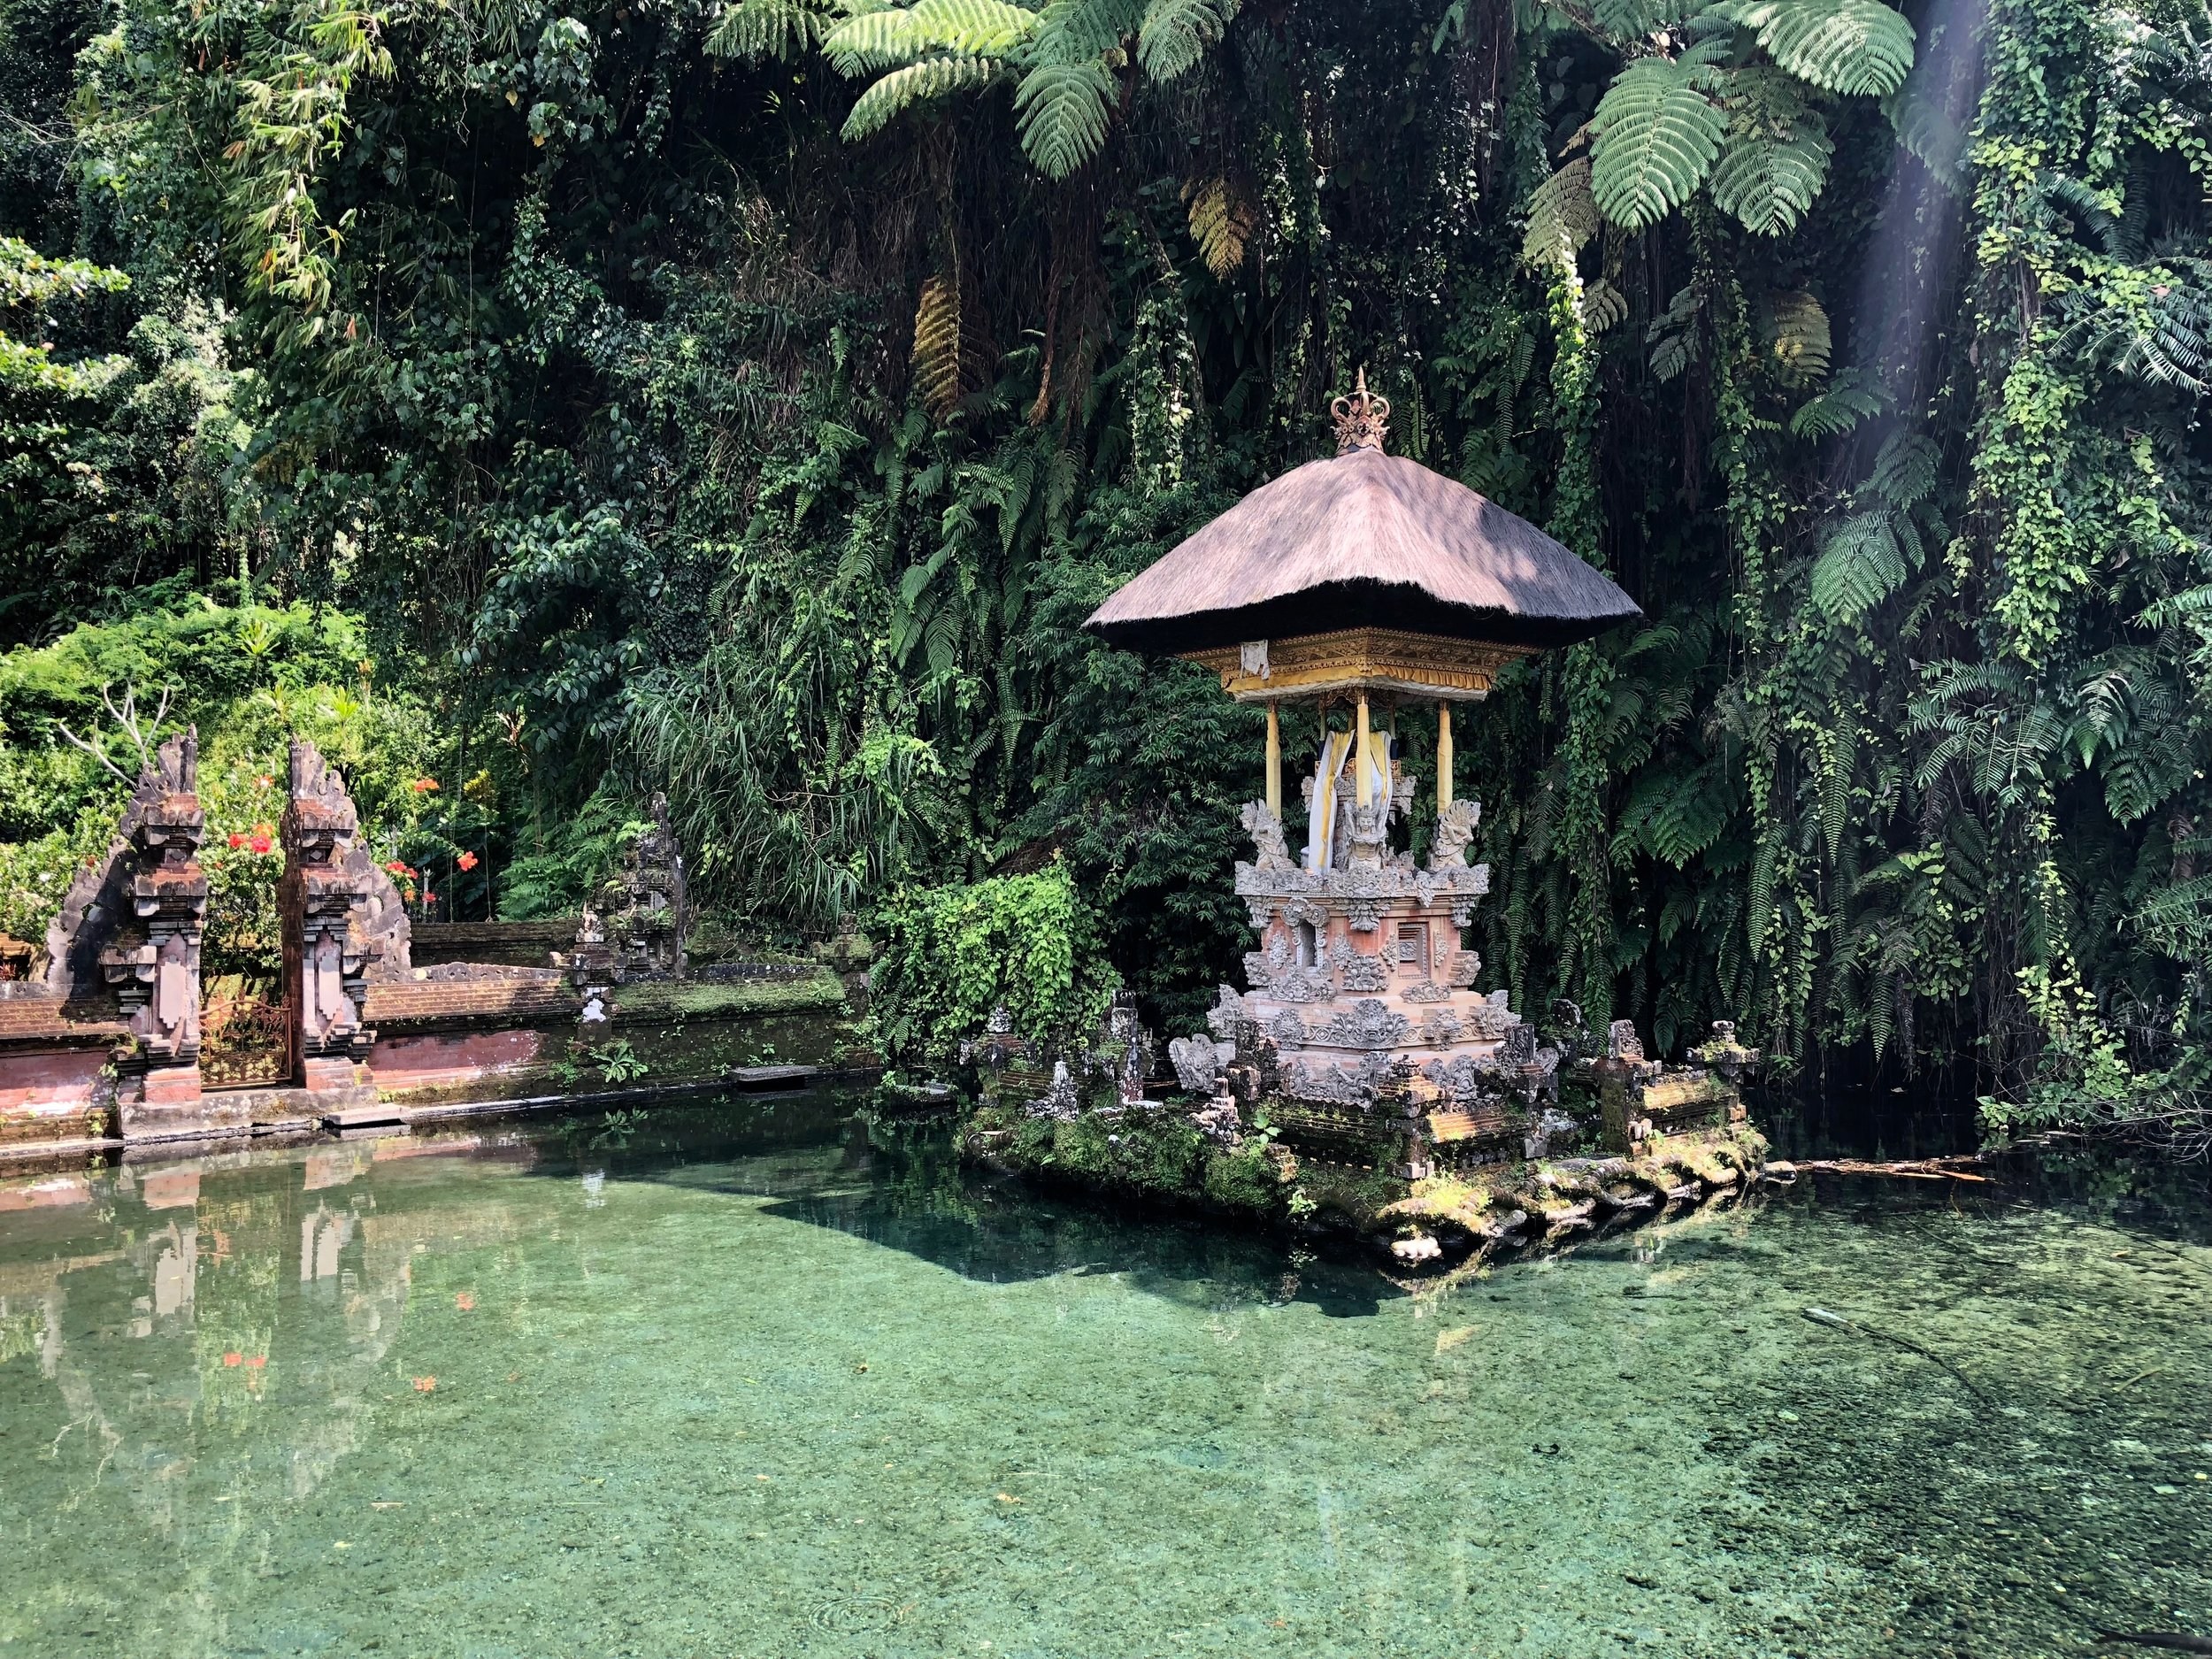 Pair a trip to this water temple with the cliff shrines of the same name and the Tegallalang Rice Terrace